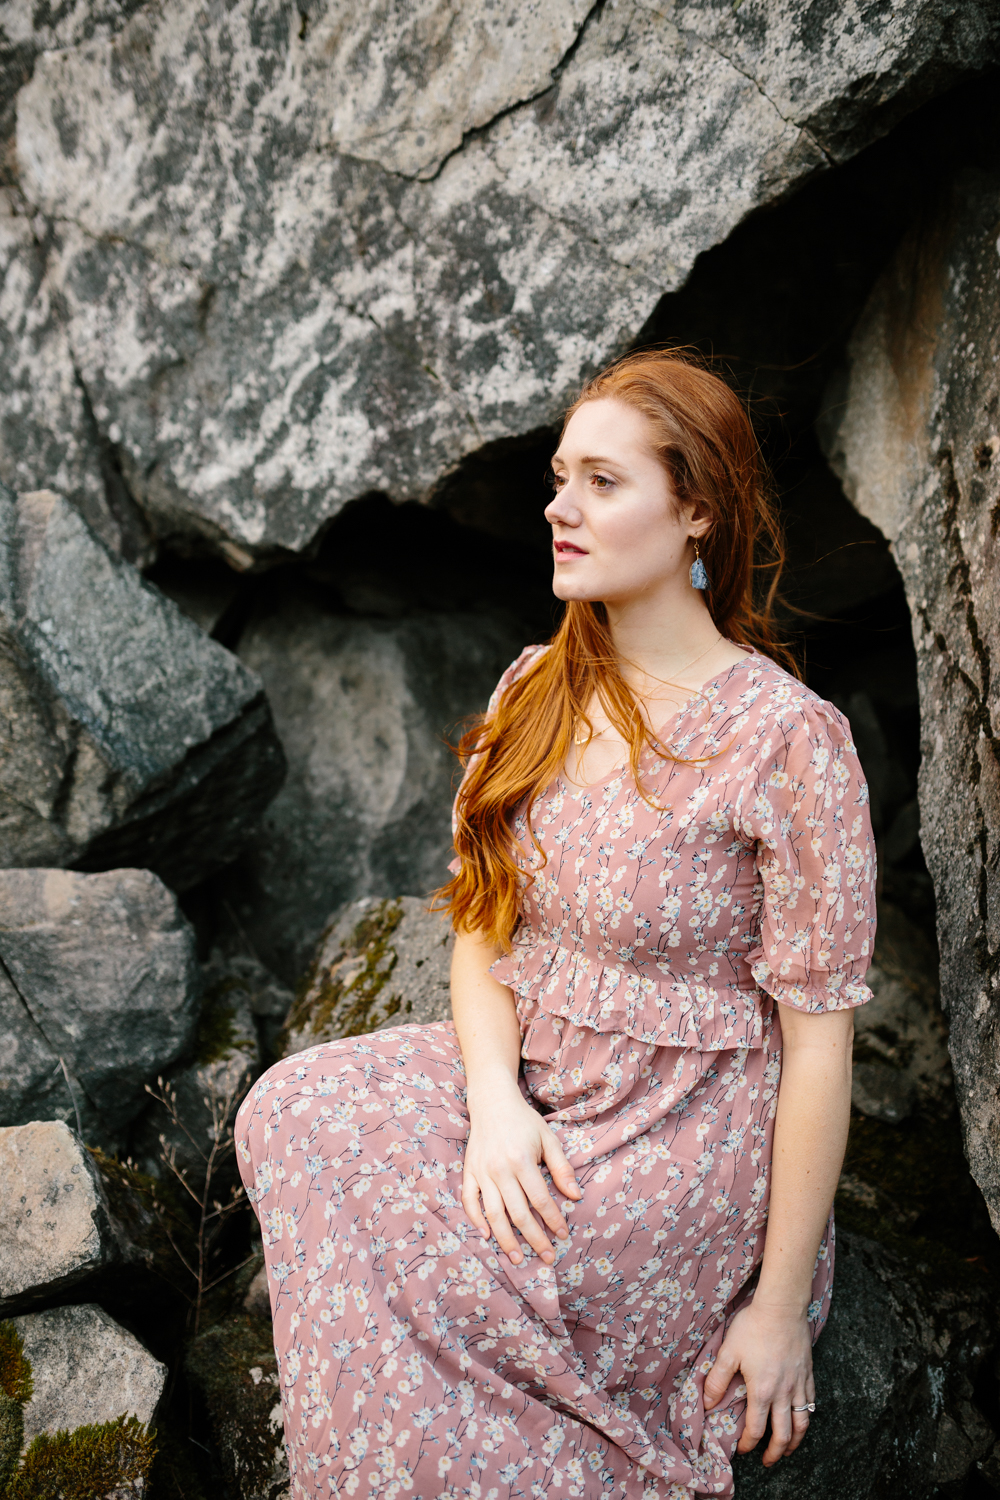 A Portrait of a Beautiful, Red-Haired Woman Sitting Amidst Bould